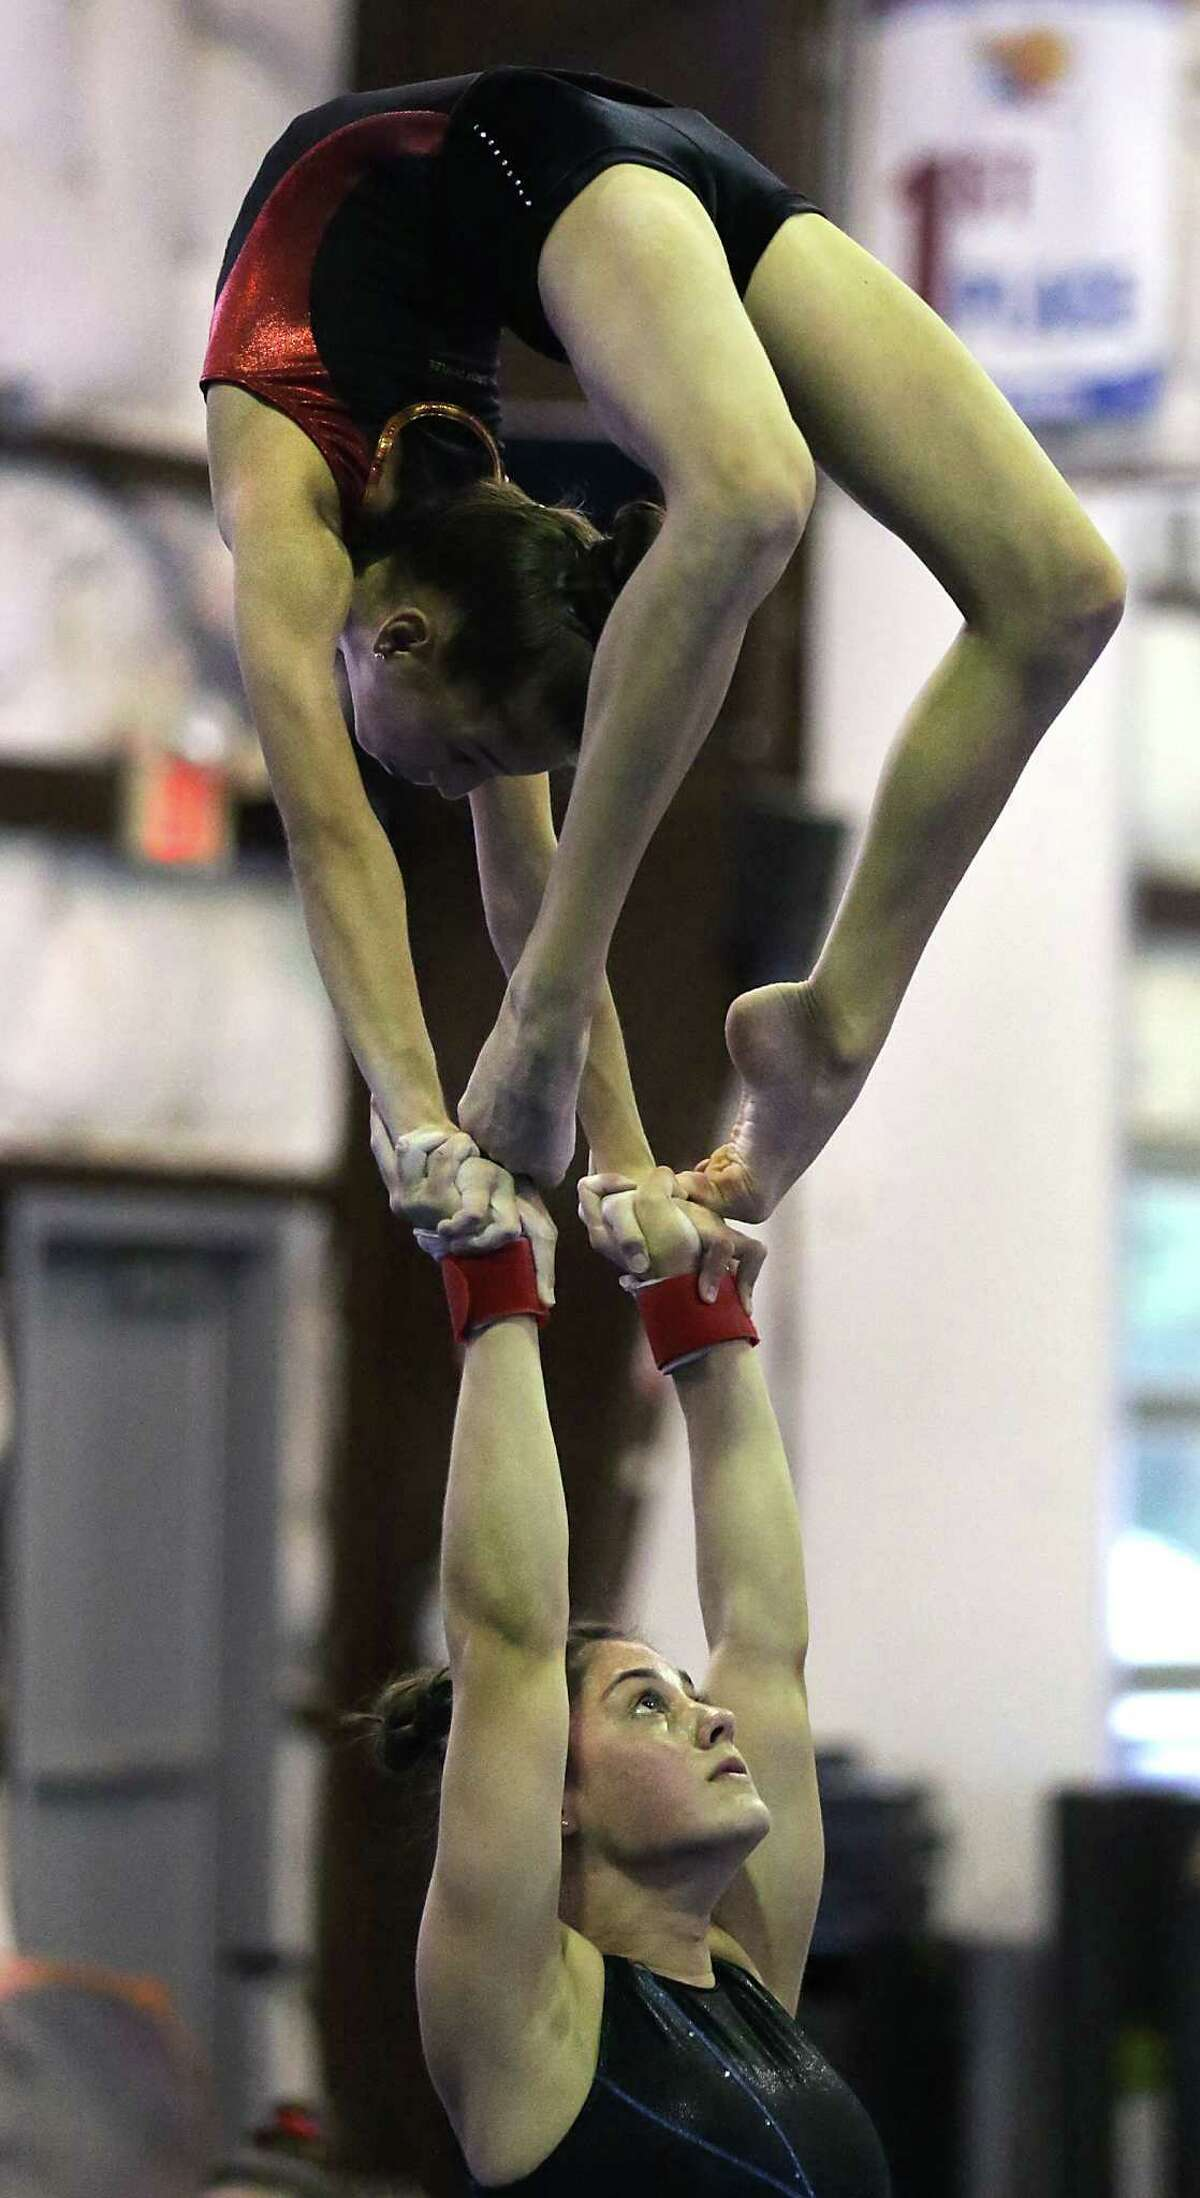 Kathleen Davis holds Katerina Partalas above her head as the two practice their routine at Acrobatic Gymnastics San Antonio. A team of young gymnasts will travel to Paris, France to compete in the Acrobatic Gymnastics World Championships. Friday, June 20, 2014.